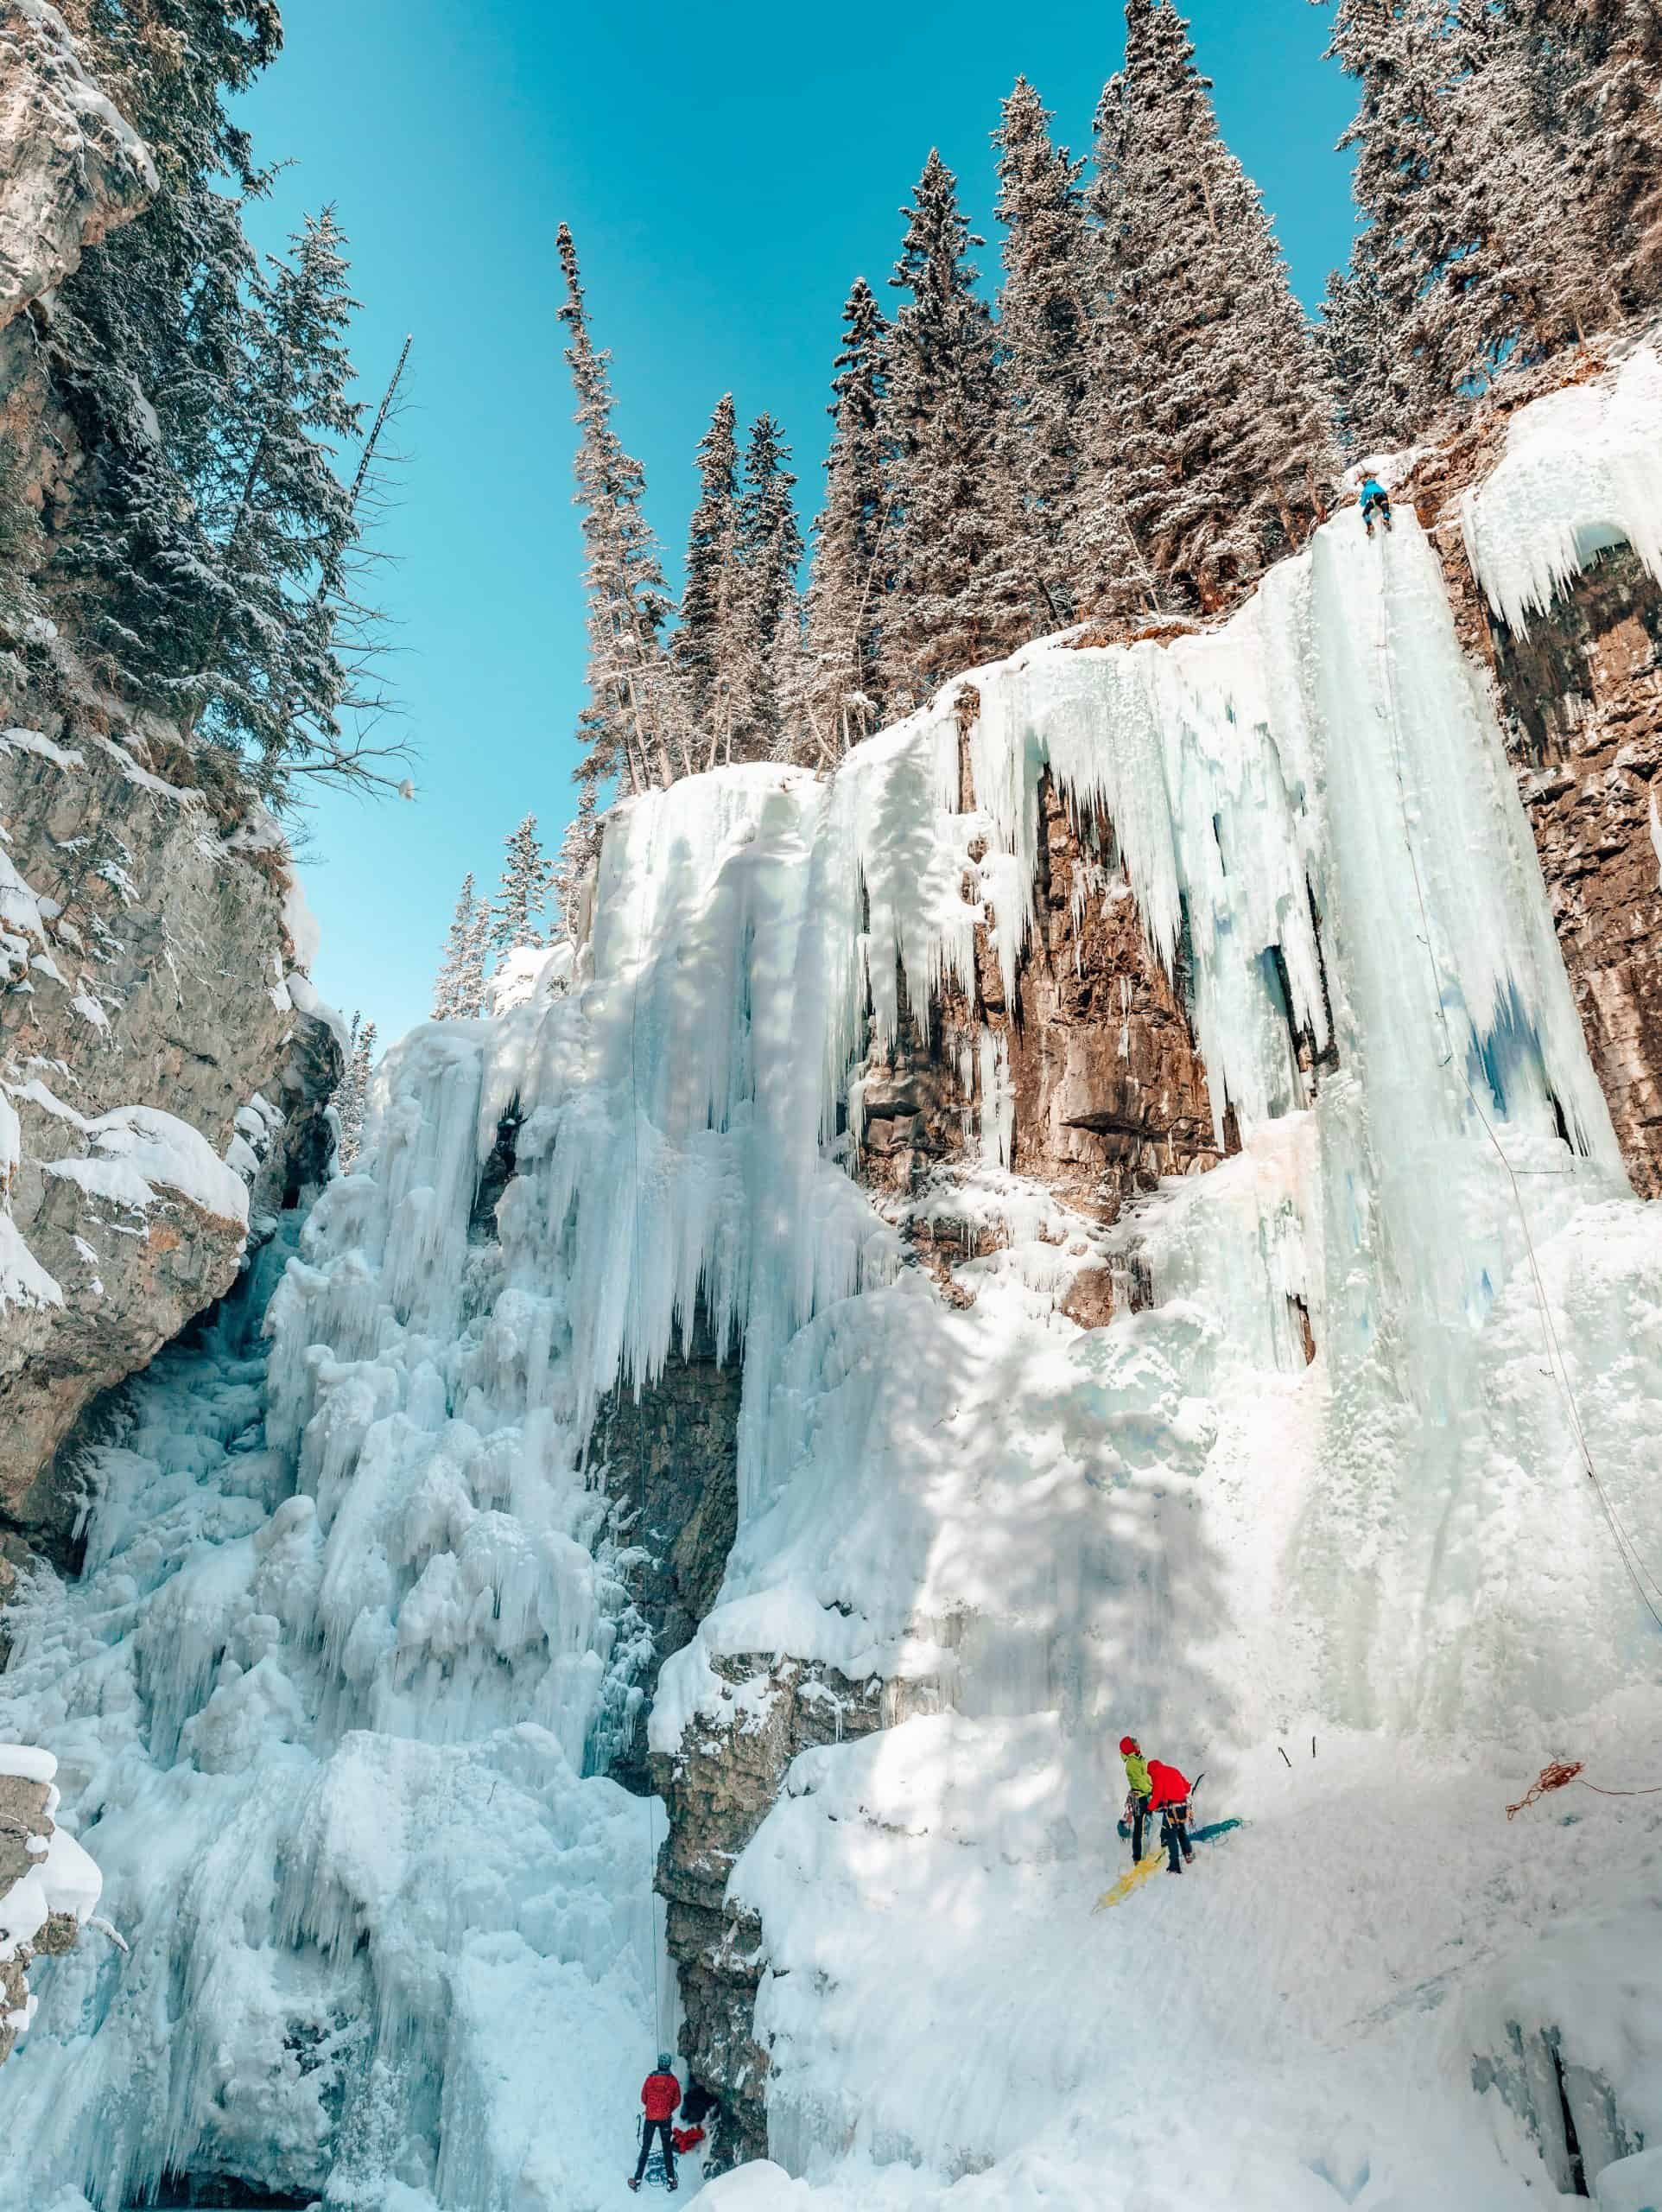 Ice Climbers on Upper Falls at Johnston Canyon - The Next Trip